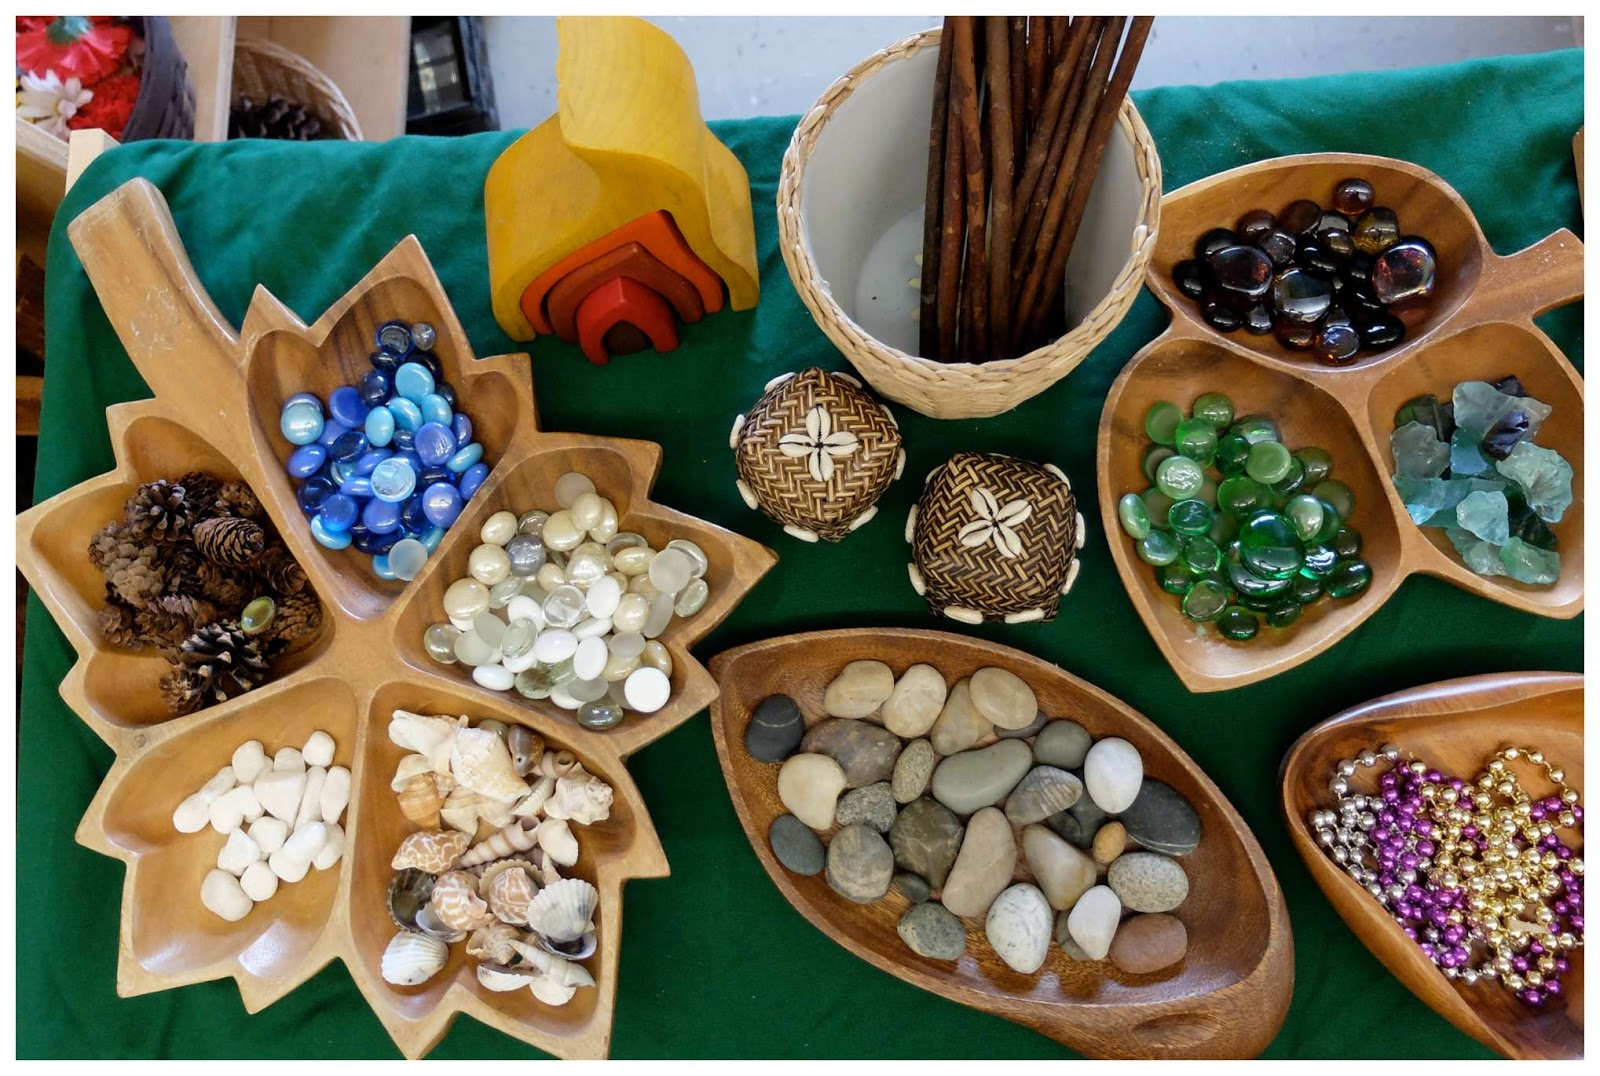 Invitation To Learn Loose Parts In A Frame